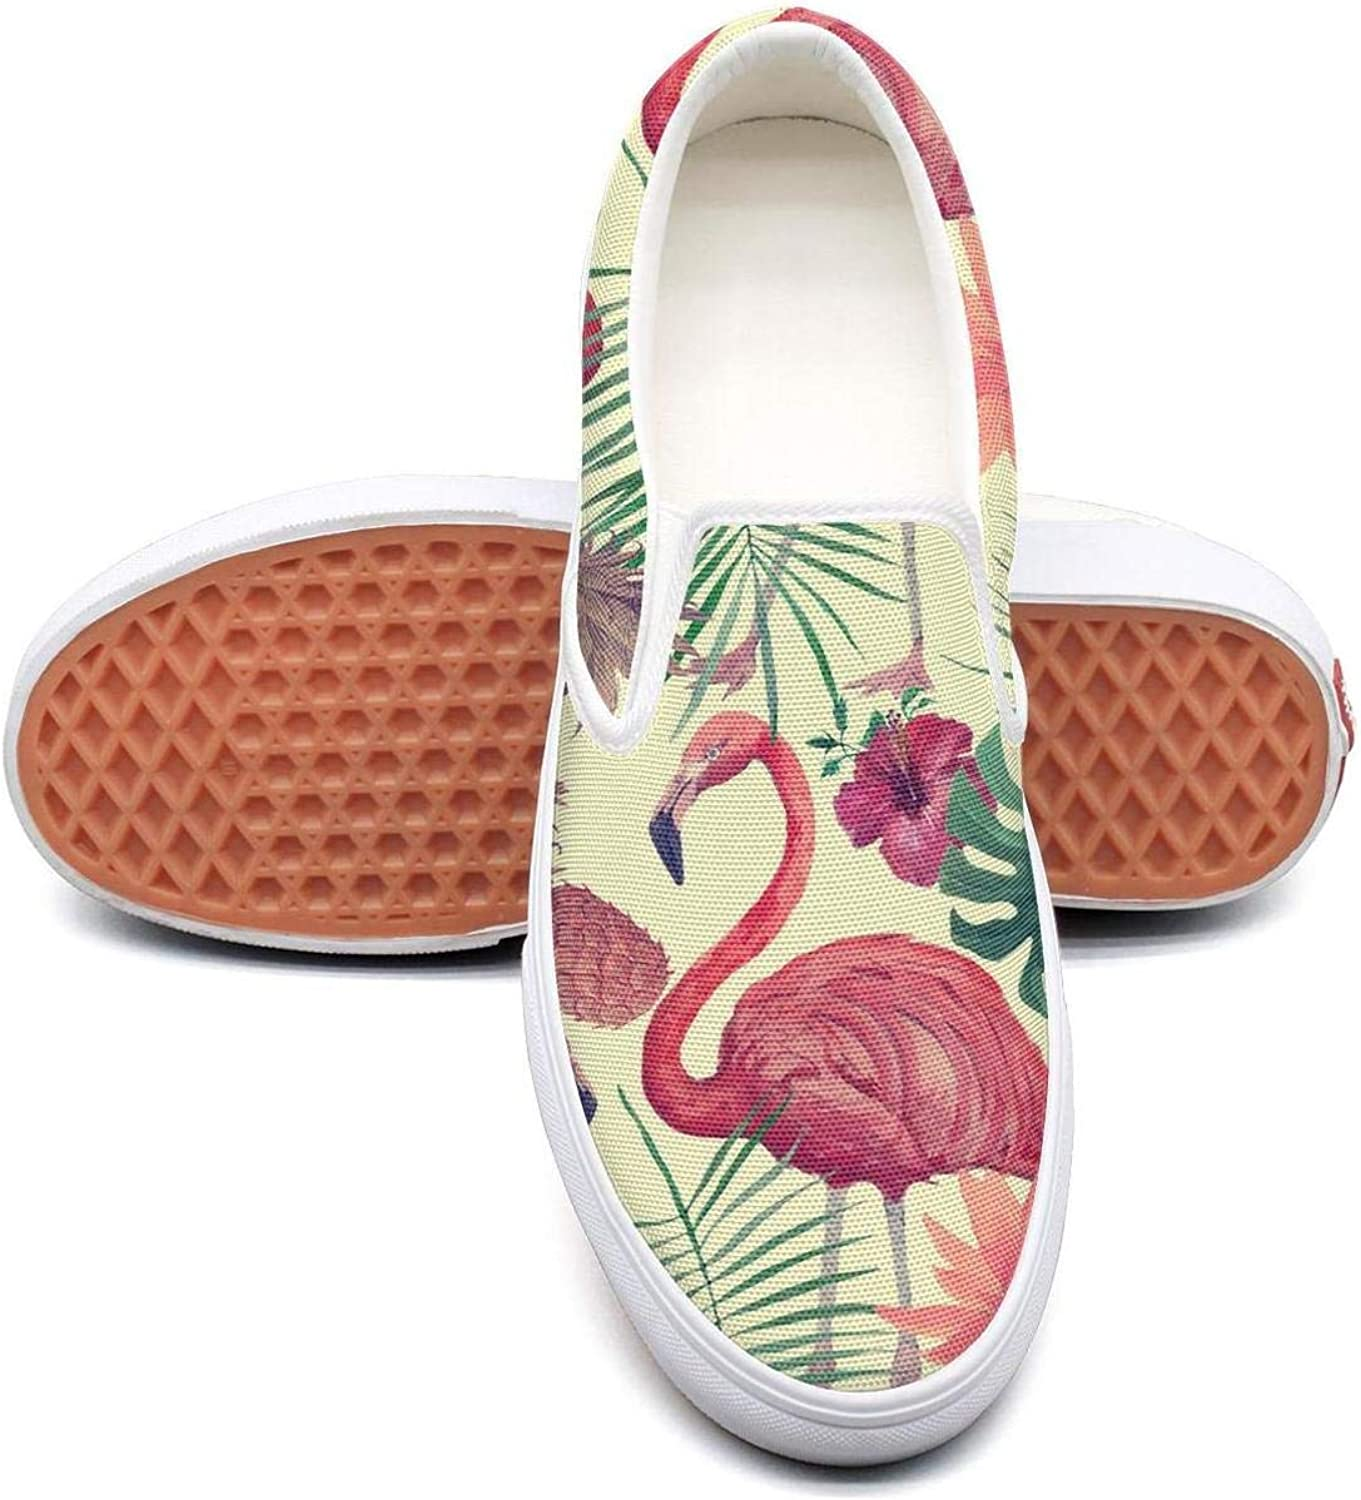 Refyds-es Back to School Pink Flamingos Womens Fashion Slip on Low Top Lightweight Canvas Volleyball Sneakers